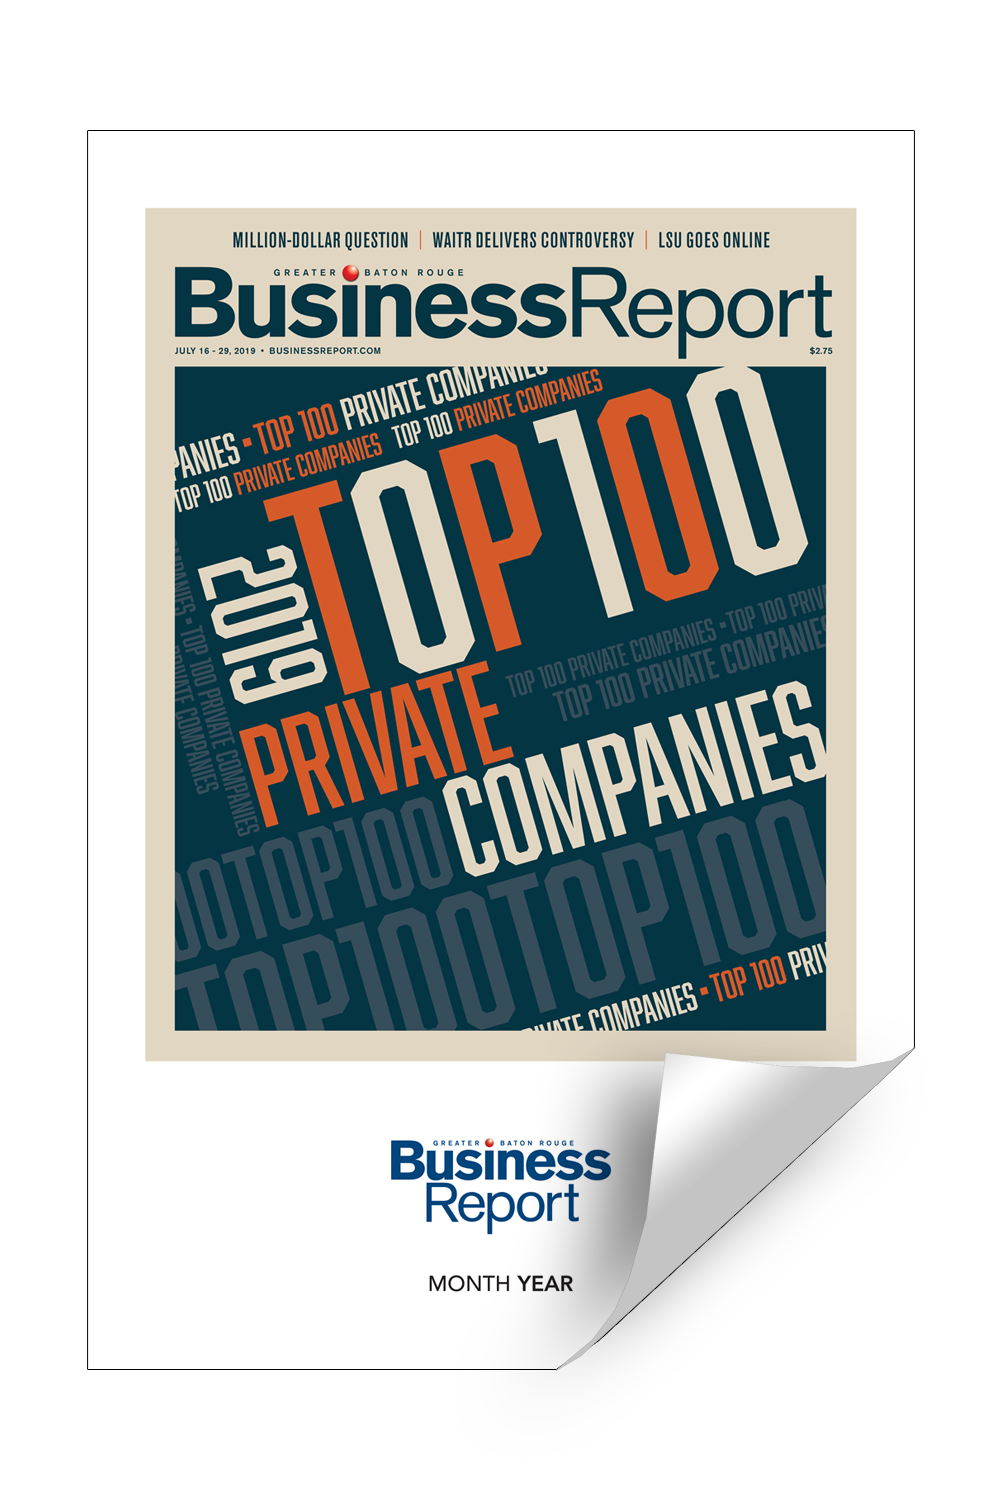 Business Report Cover / Article Reprints